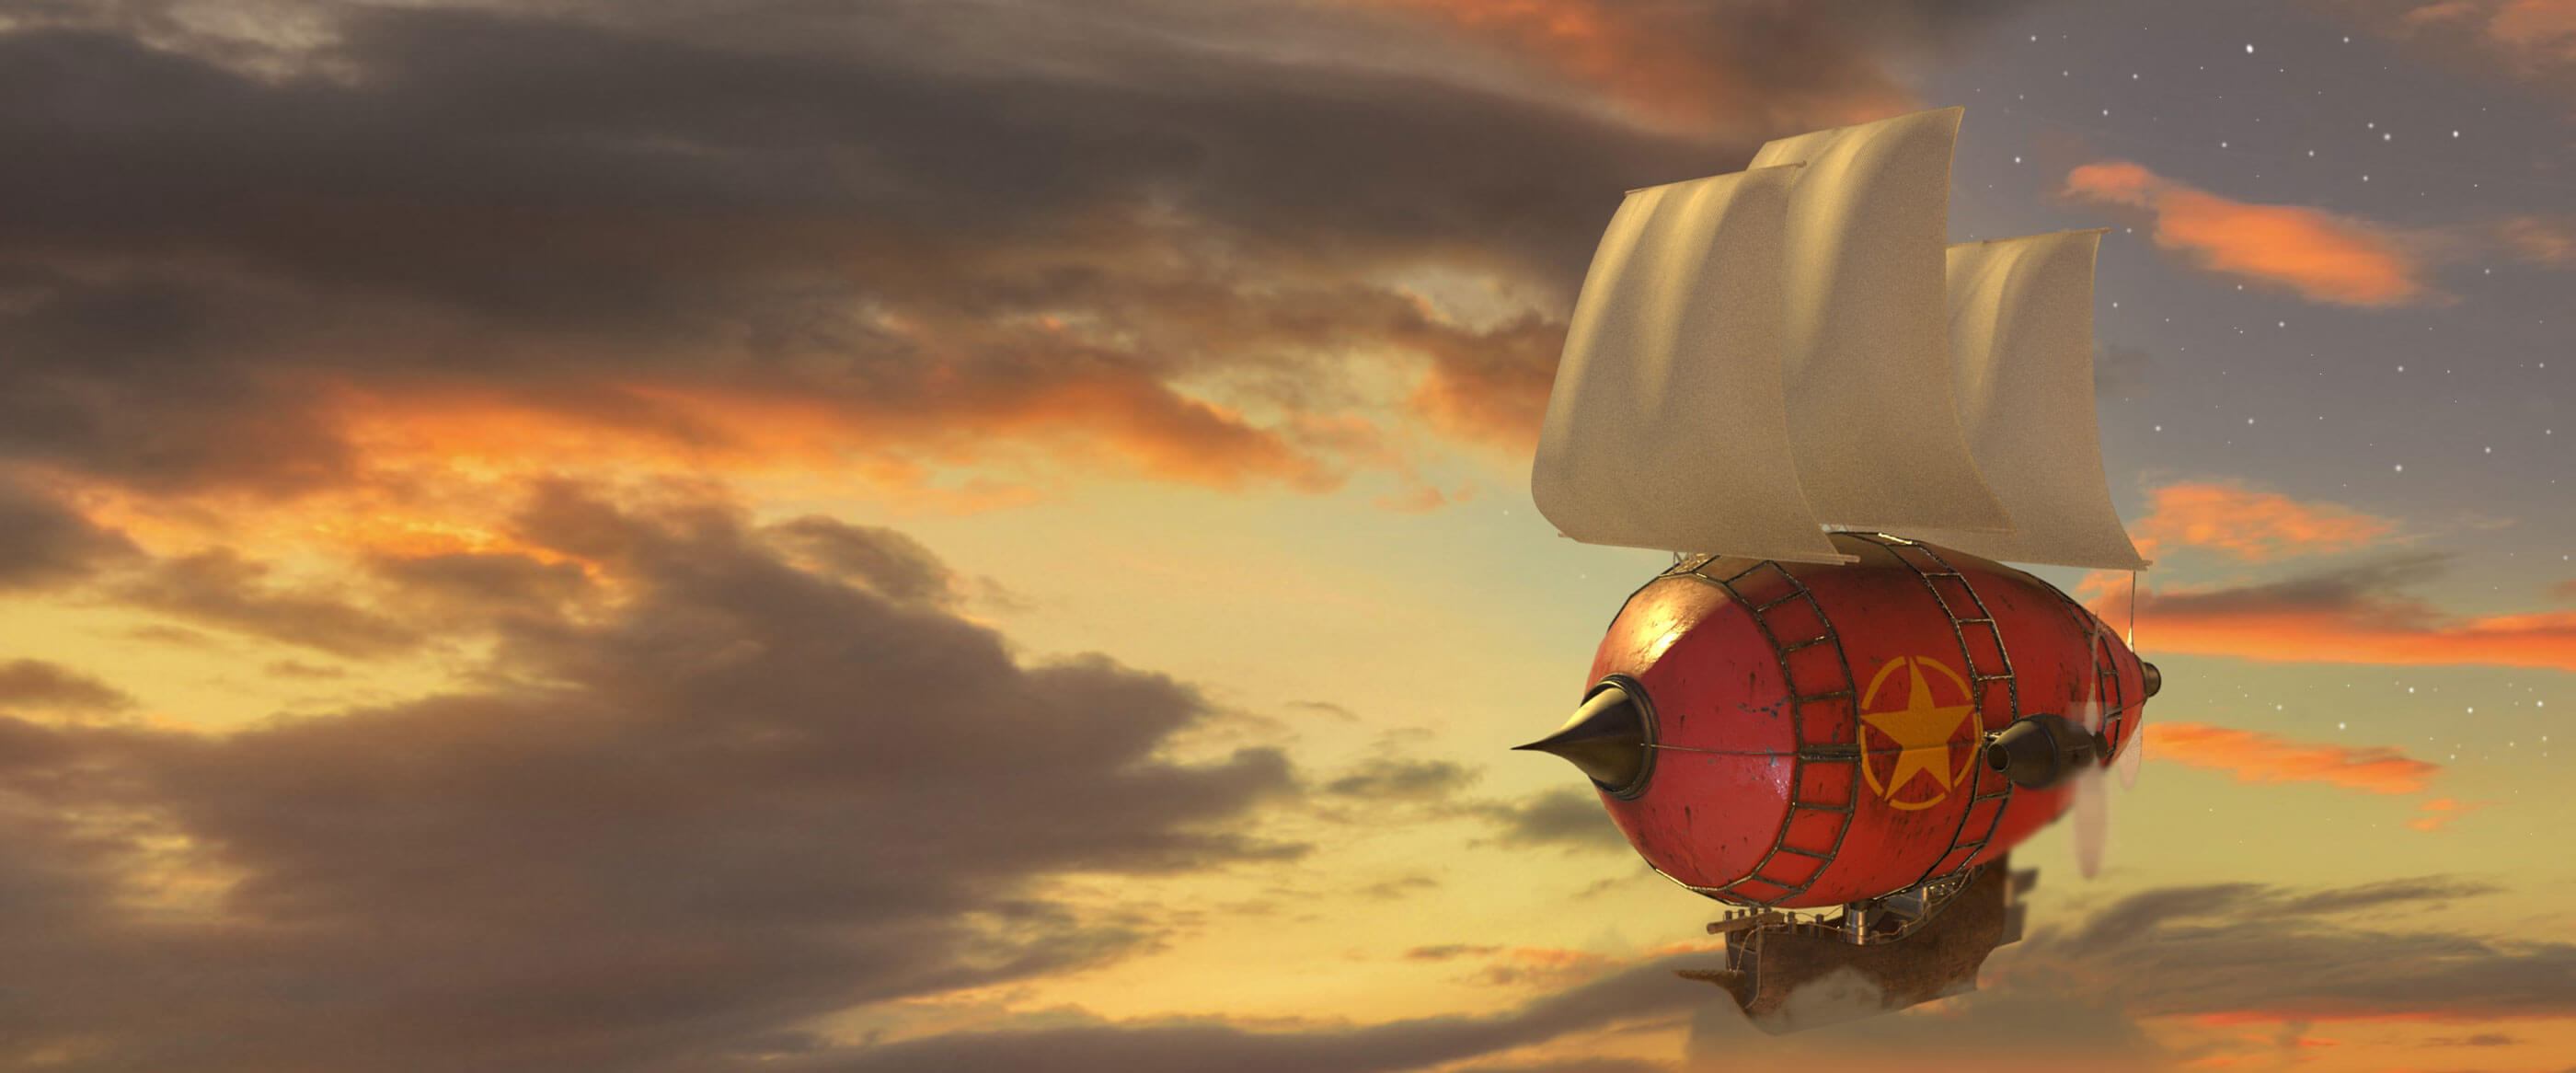 A stylized skyship floats through clouds during sunset